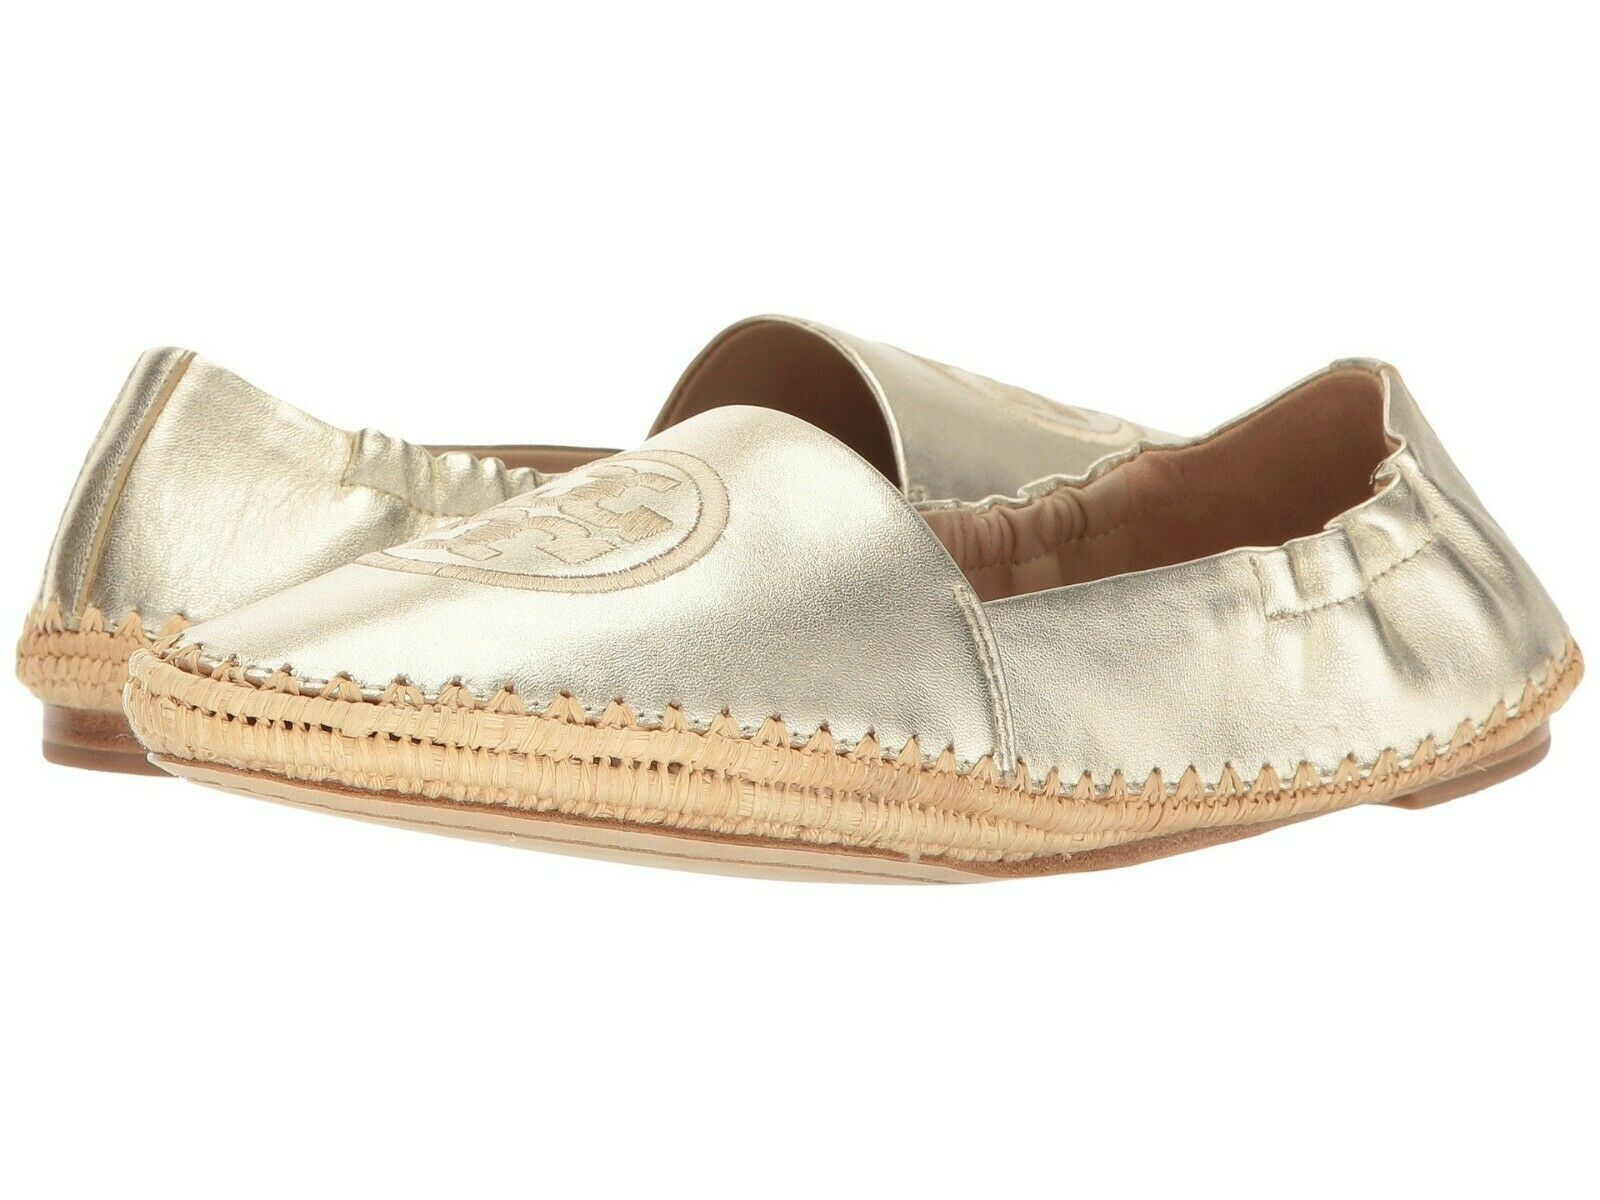 NIB    225 Tory Burch gold Darien Loafer Metallic Espadrille shoes Flats Size 9.5 0ee0bf